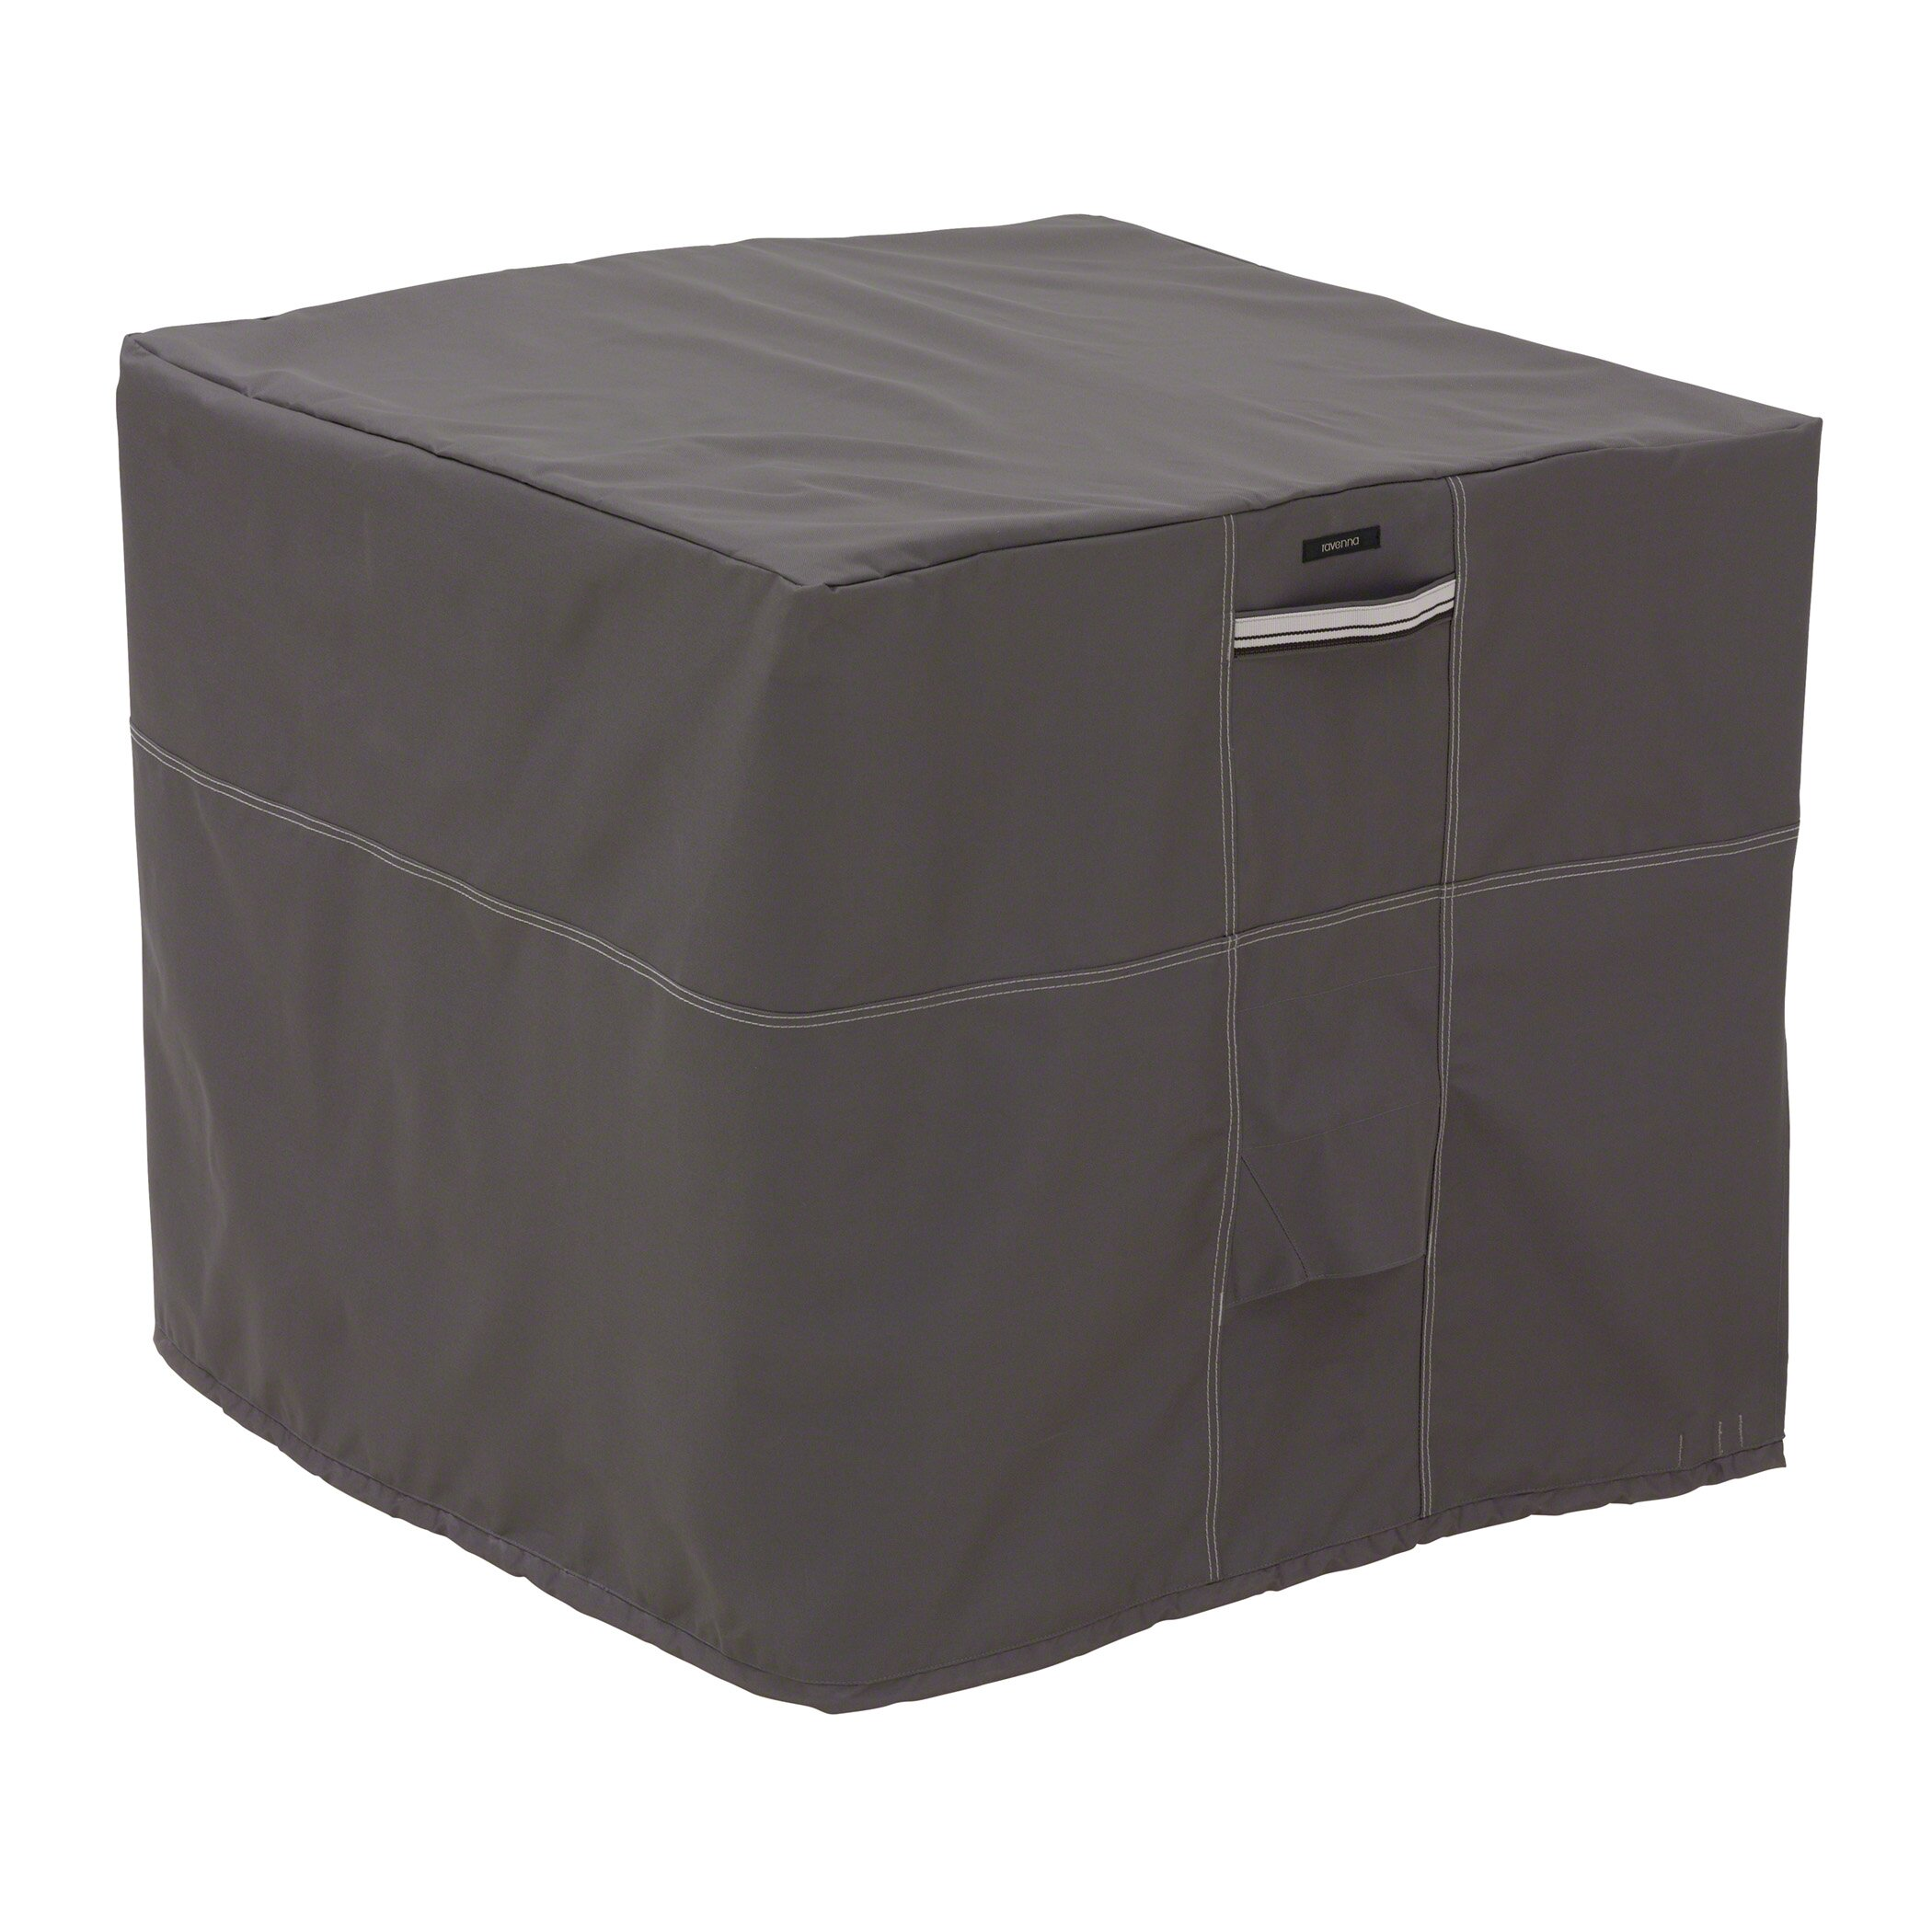 Classic Accessories Ravenna Patio Air Conditioner Cover & Reviews